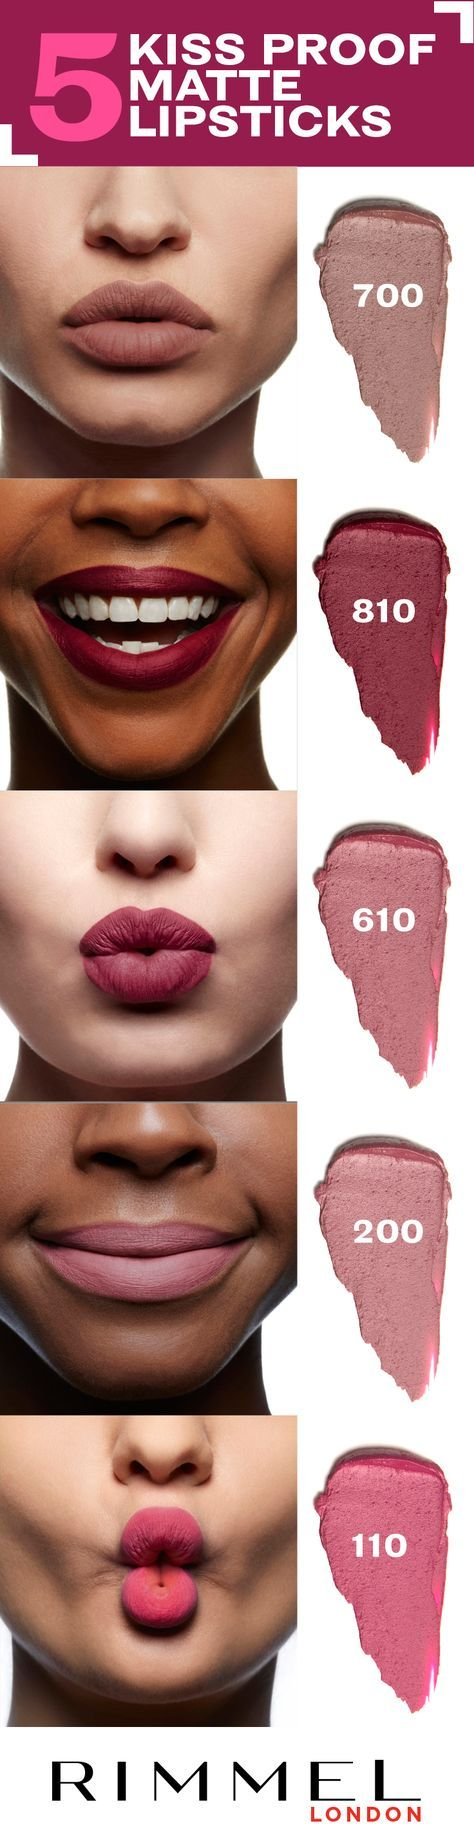 8814 best cosmetics images on pinterest | make up, products and red